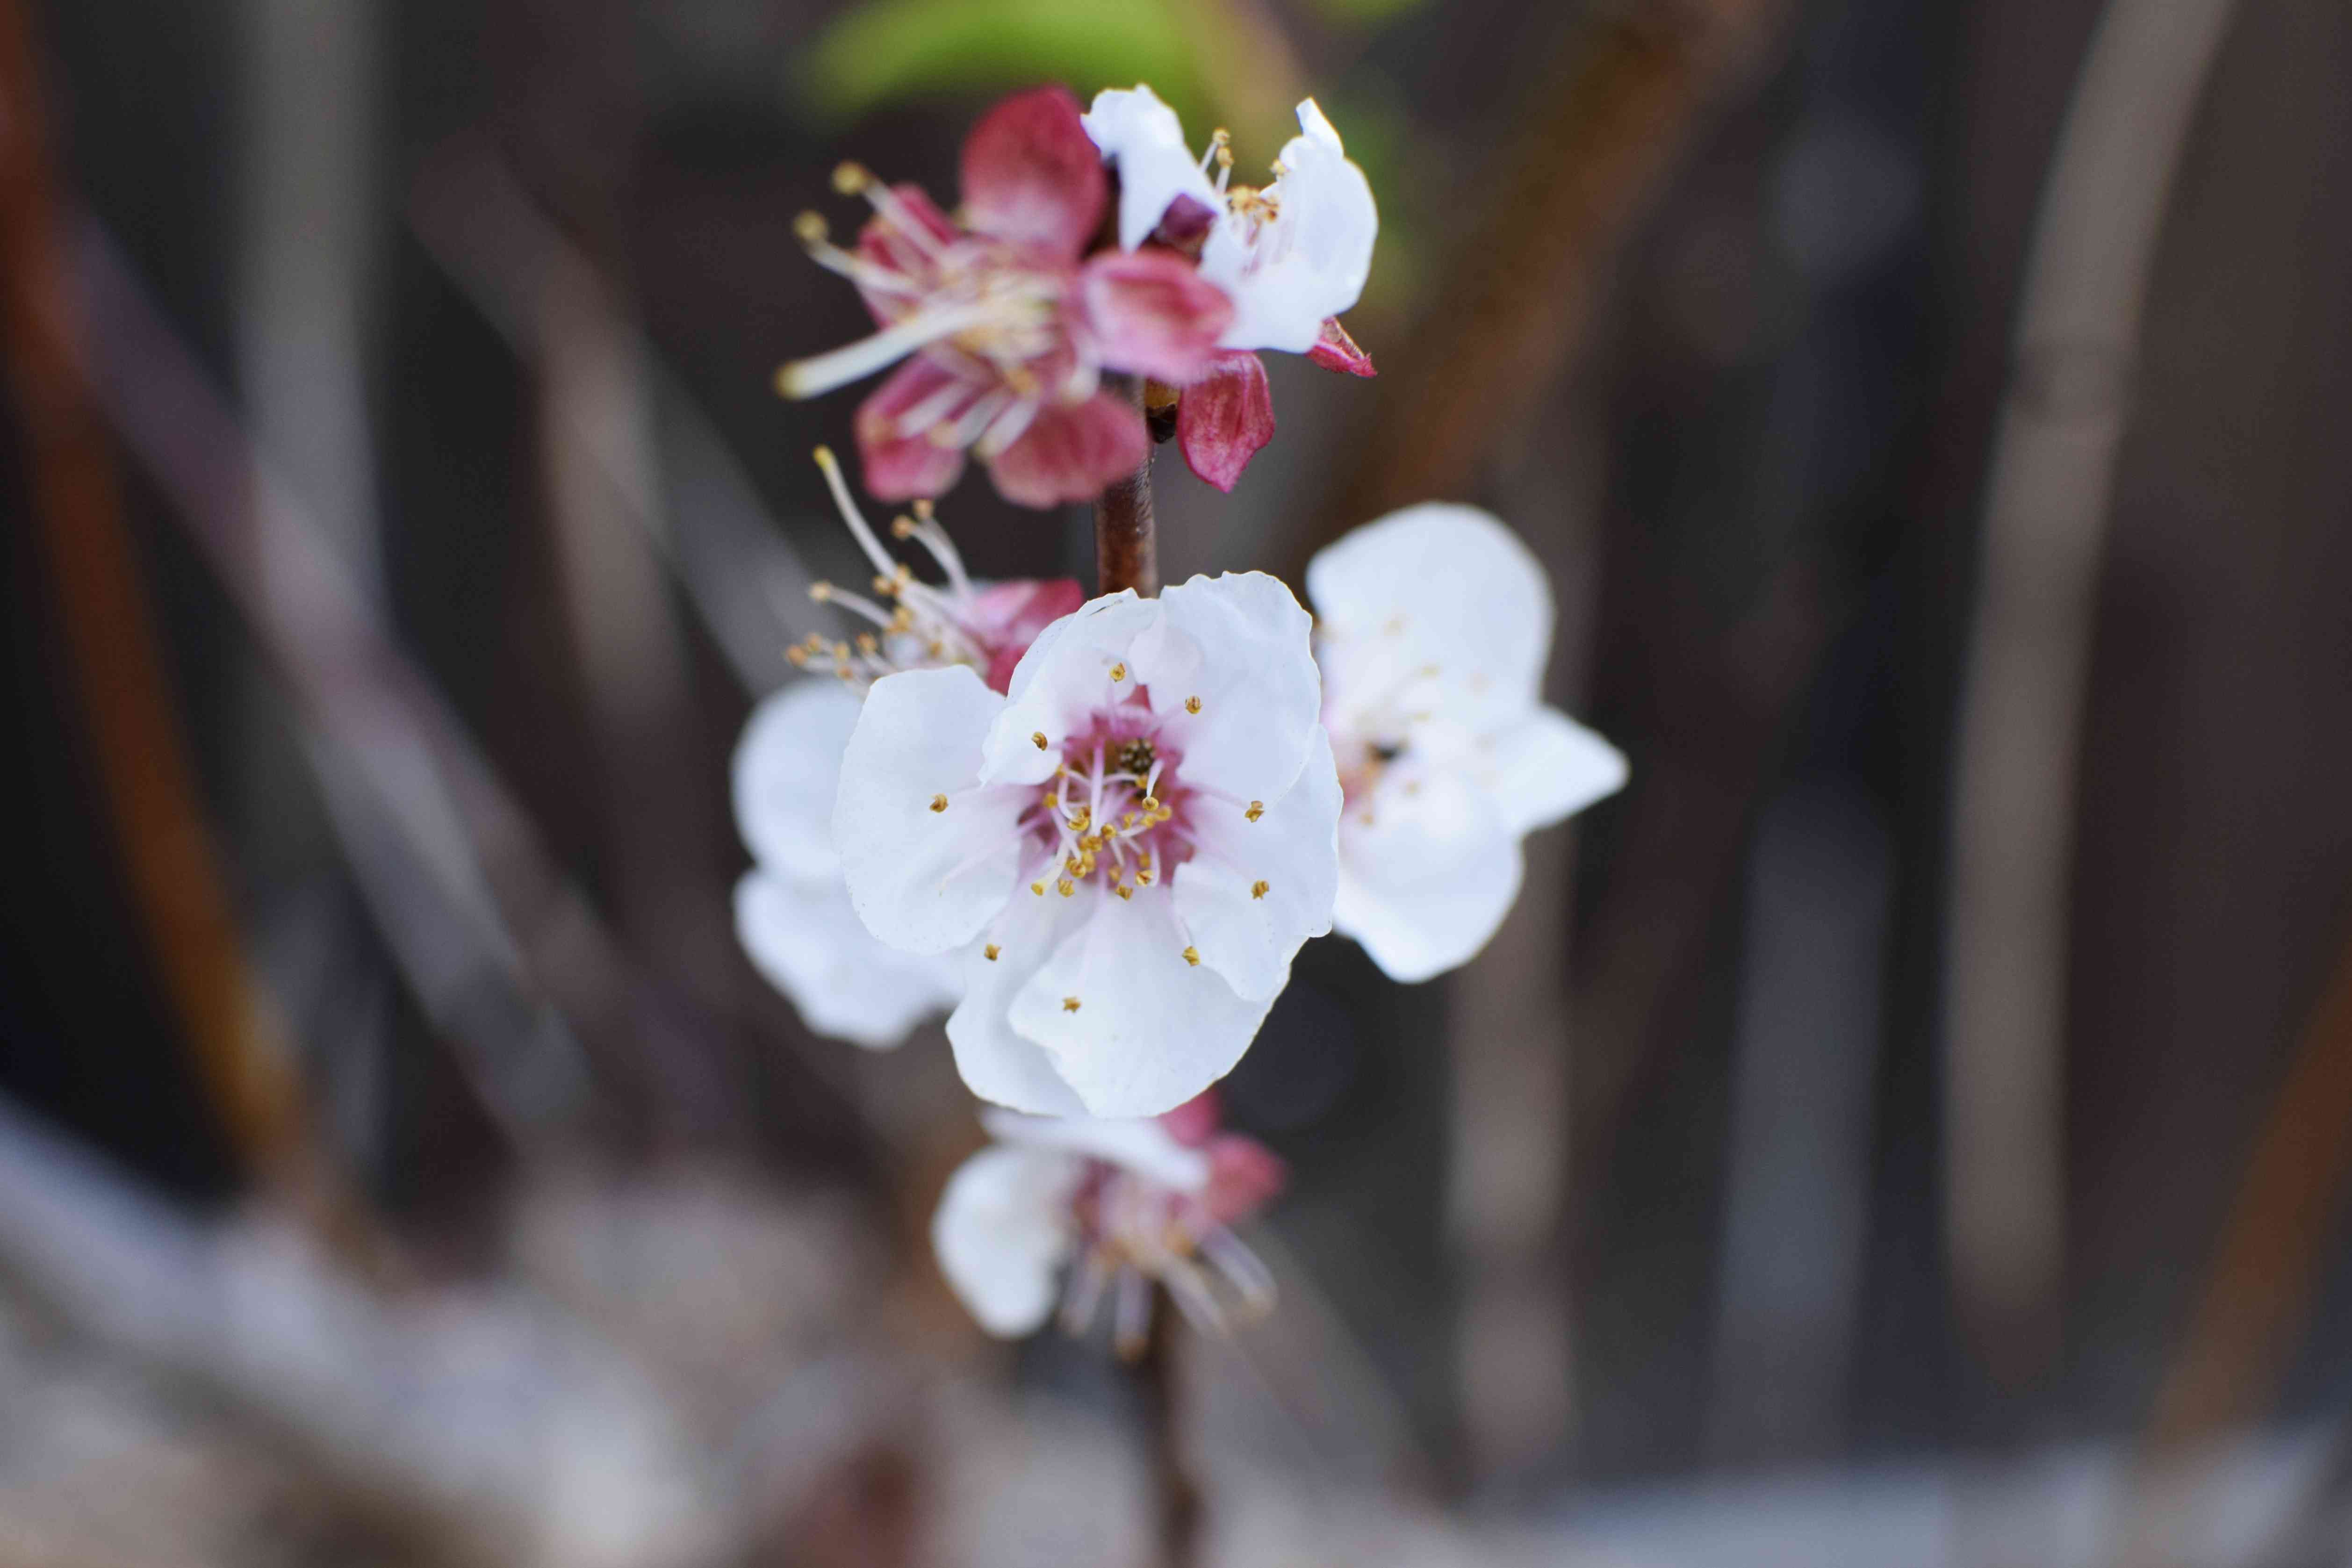 Apricot tree branch with white and pink blossoms closeup